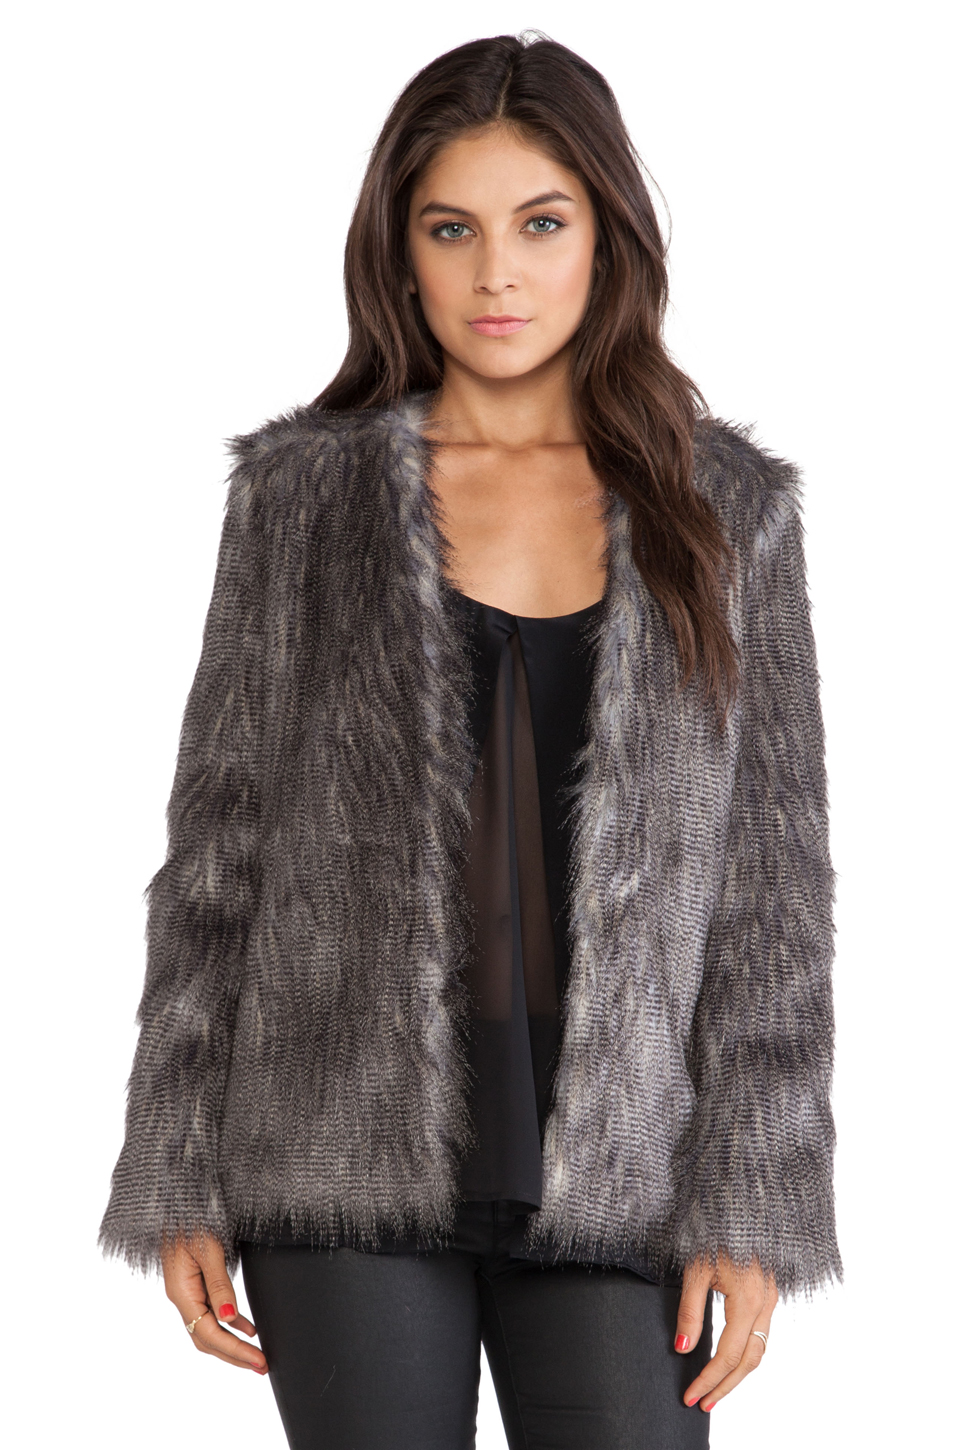 Ladakh Flecked Faux Fur Coat in Brown